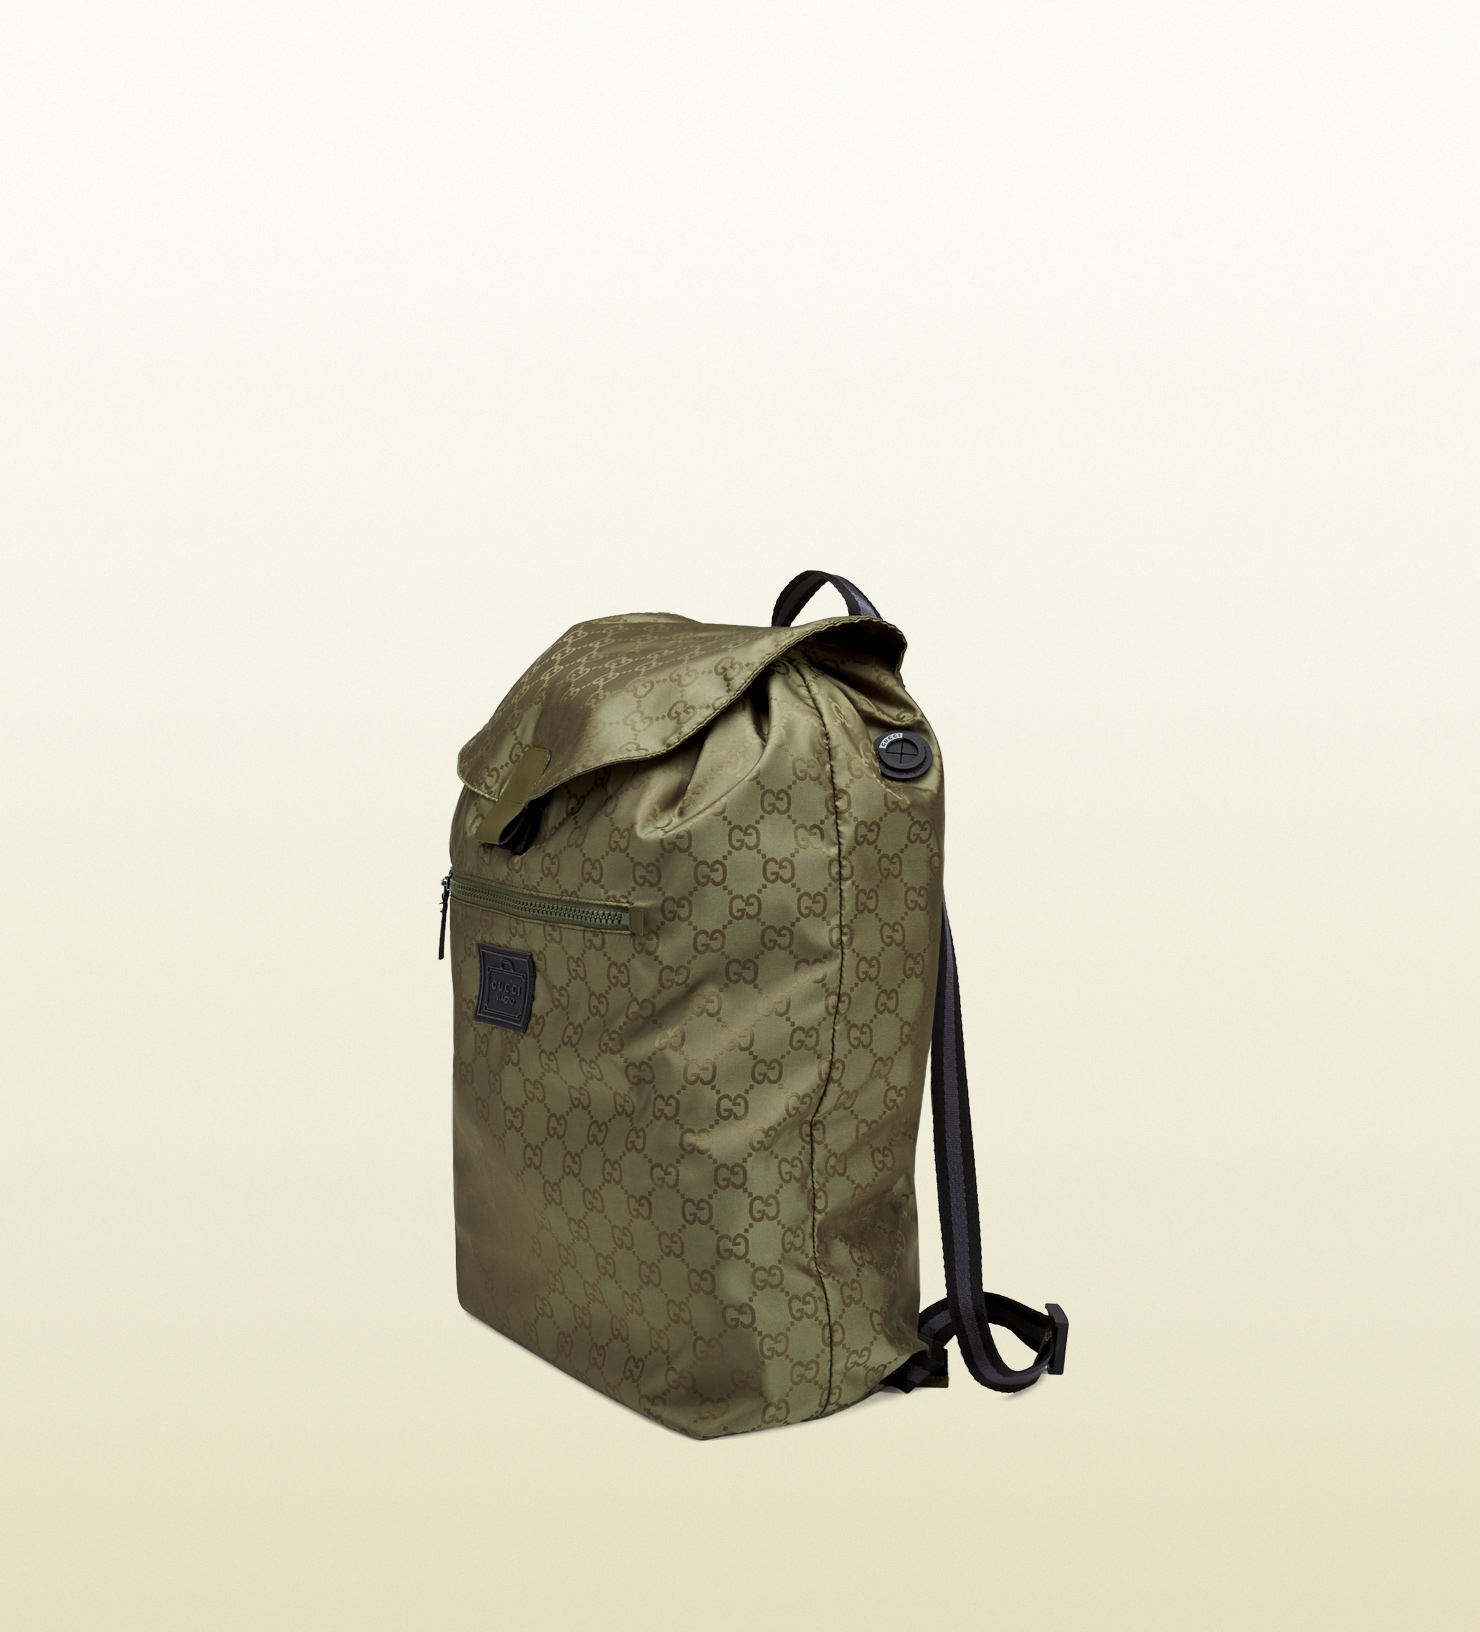 Gucci Gg Nylon Backpack From The Viaggio Collection in Green for Men ... 2ac01e645d53f